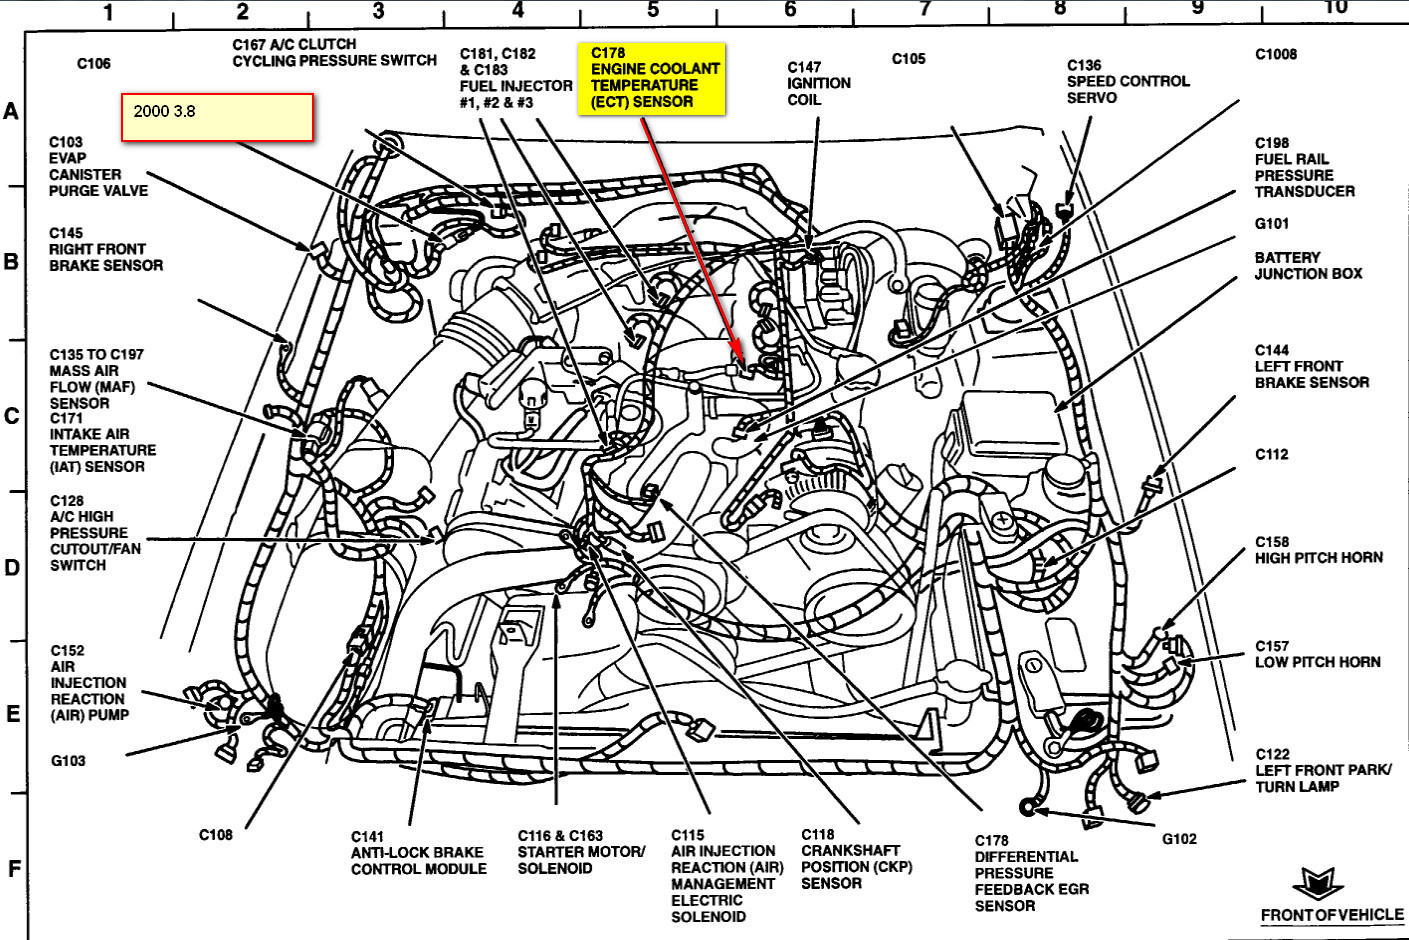 Pontiac G6 2006 Fuse Box Diagram furthermore Nissan Altima Fuel Tank Pressure Sensor Location furthermore Wiring Diagram For 2001 Chevy Silverado besides 2001 Ford Windstar  puter Location also Ford Contour Fuse Box Diagram. on ford mustang cooling fan relay